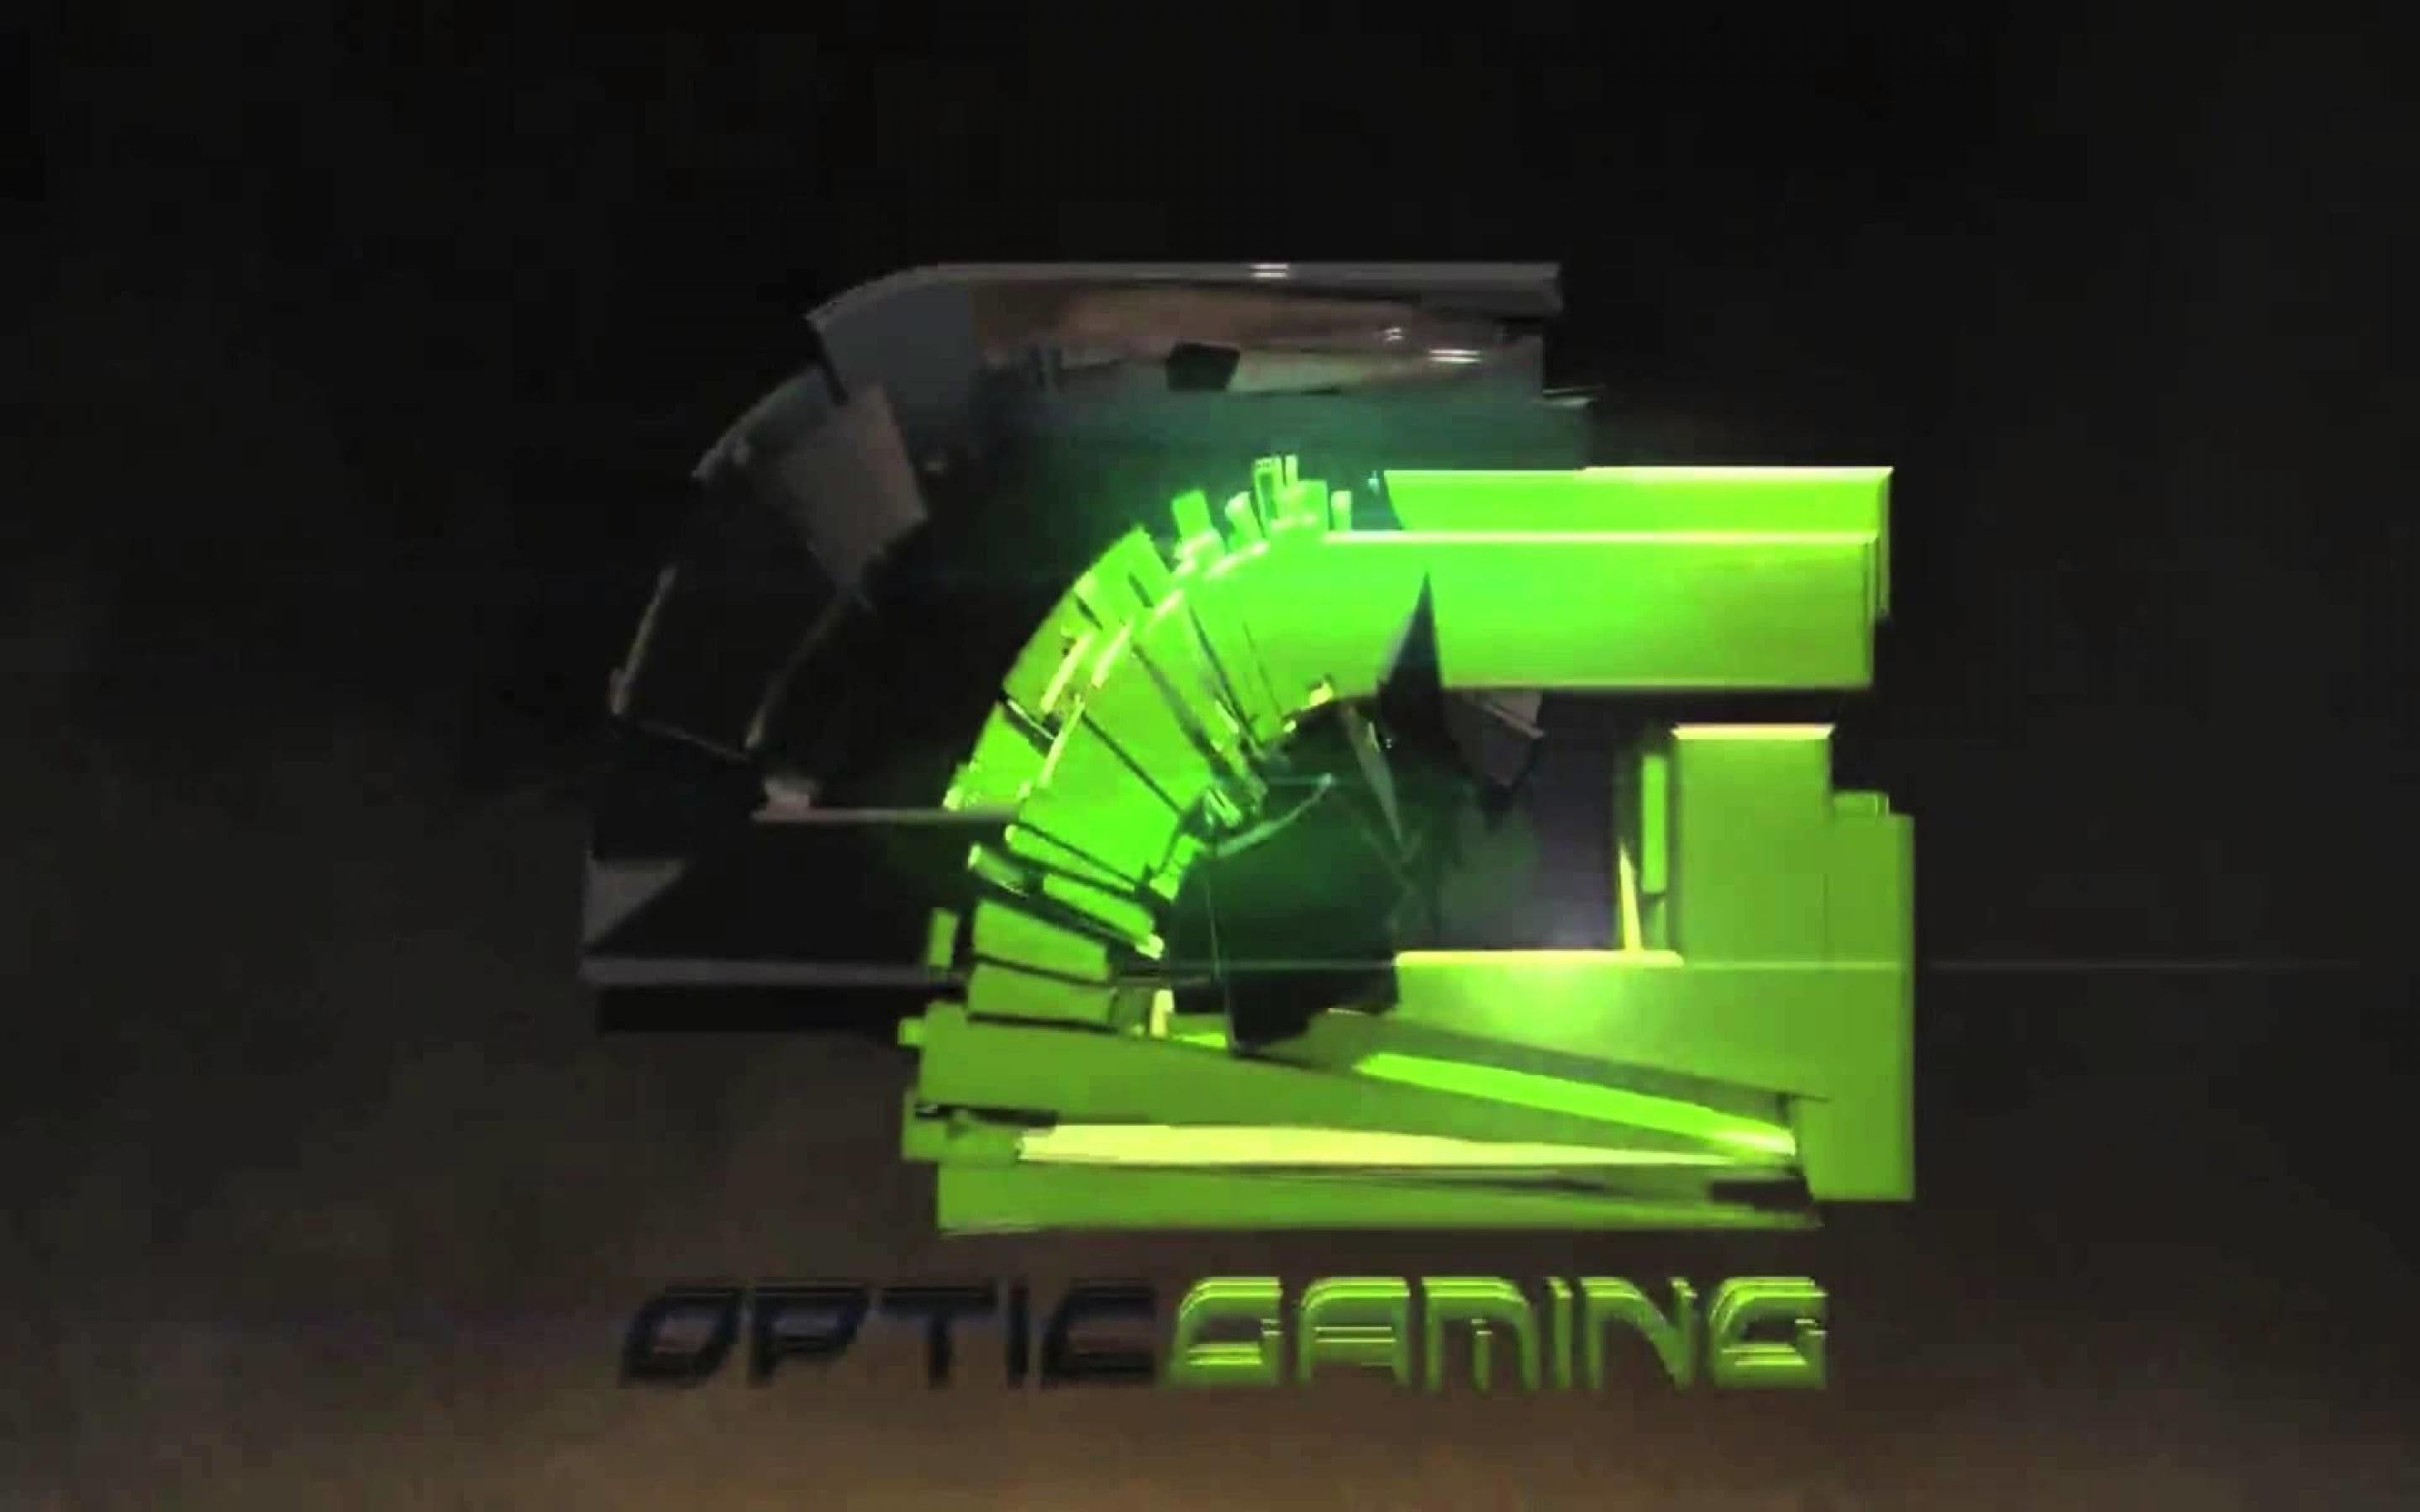 2880x1800 Optic Gaming Wallpaper 2015  Px, #219LSXK